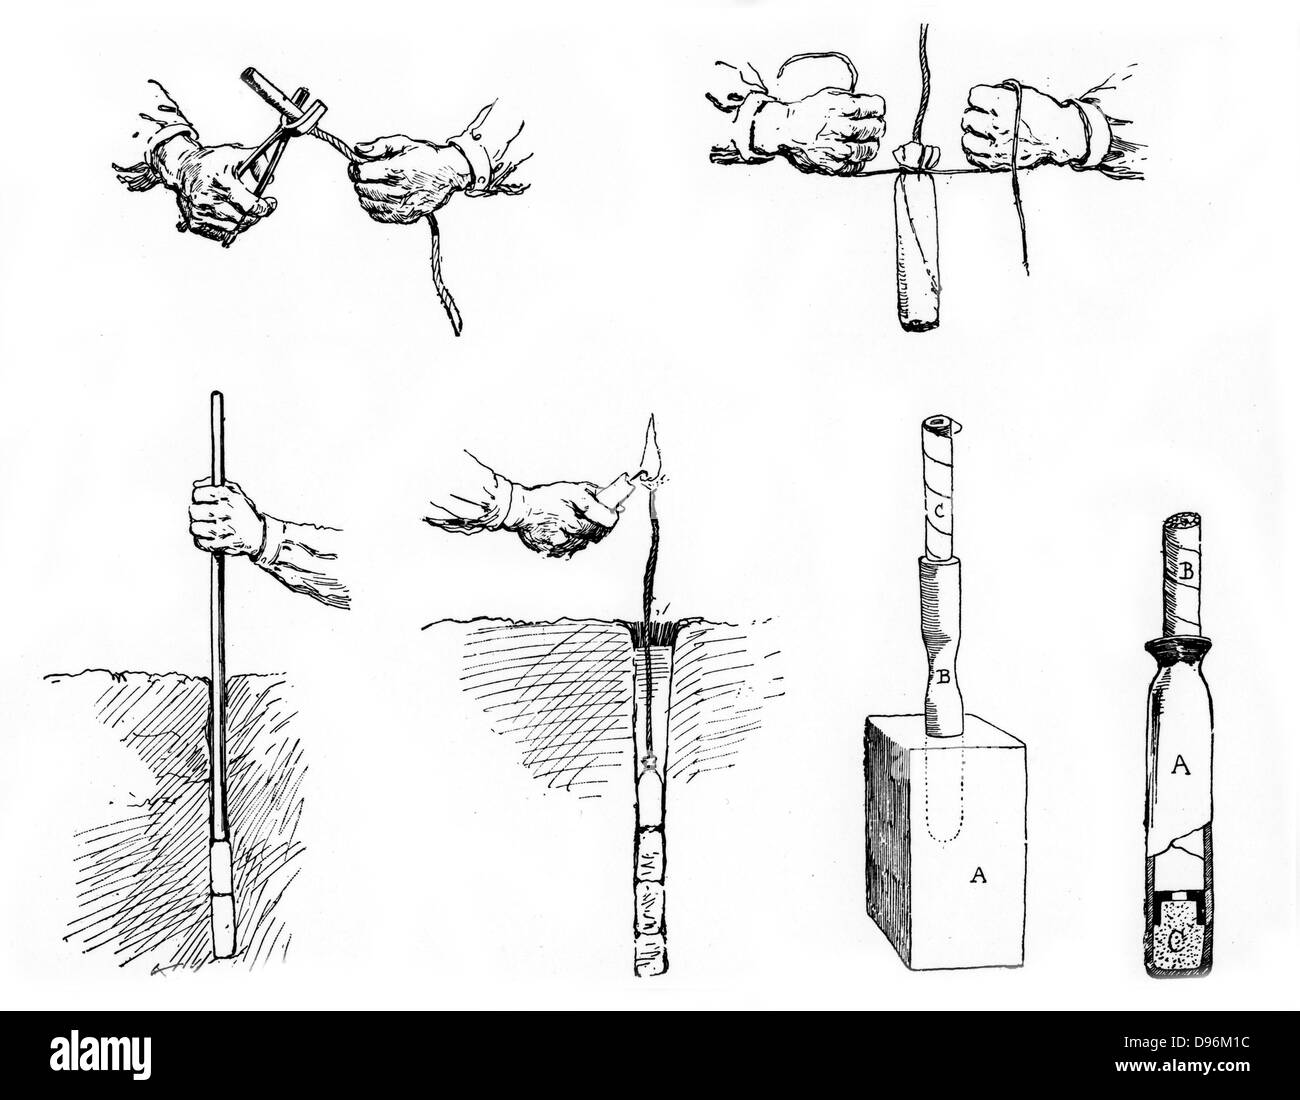 Method of preparing and setting a Dynamite charge.  From 'La Science Illustree', Paris, c. 1890 - Stock Image